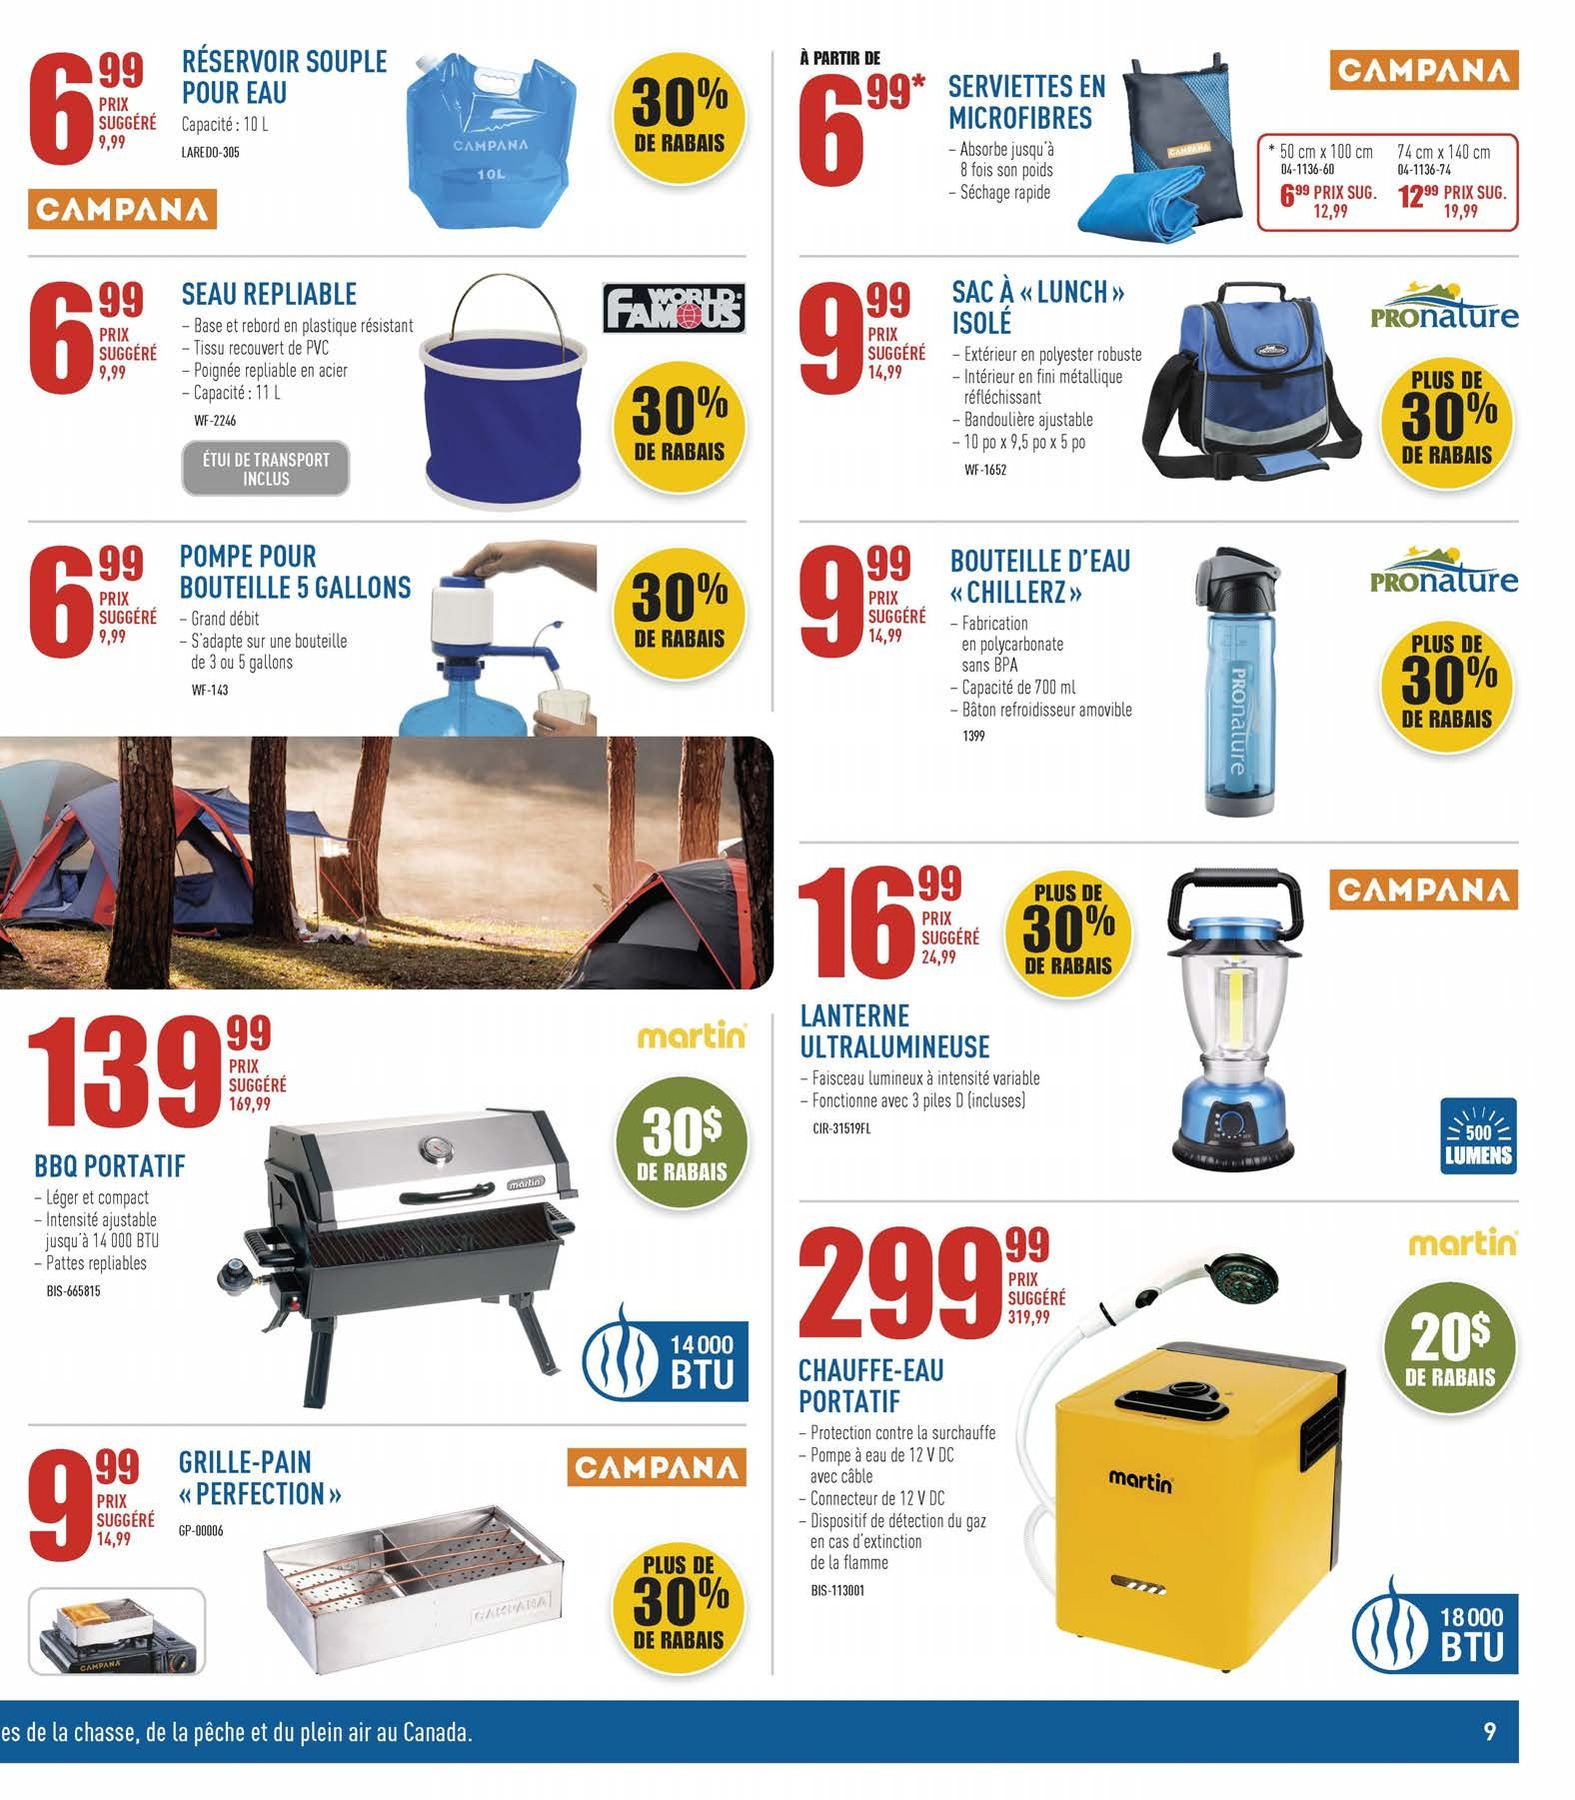 Flyer 210516 780 page 9 fr 1620160168